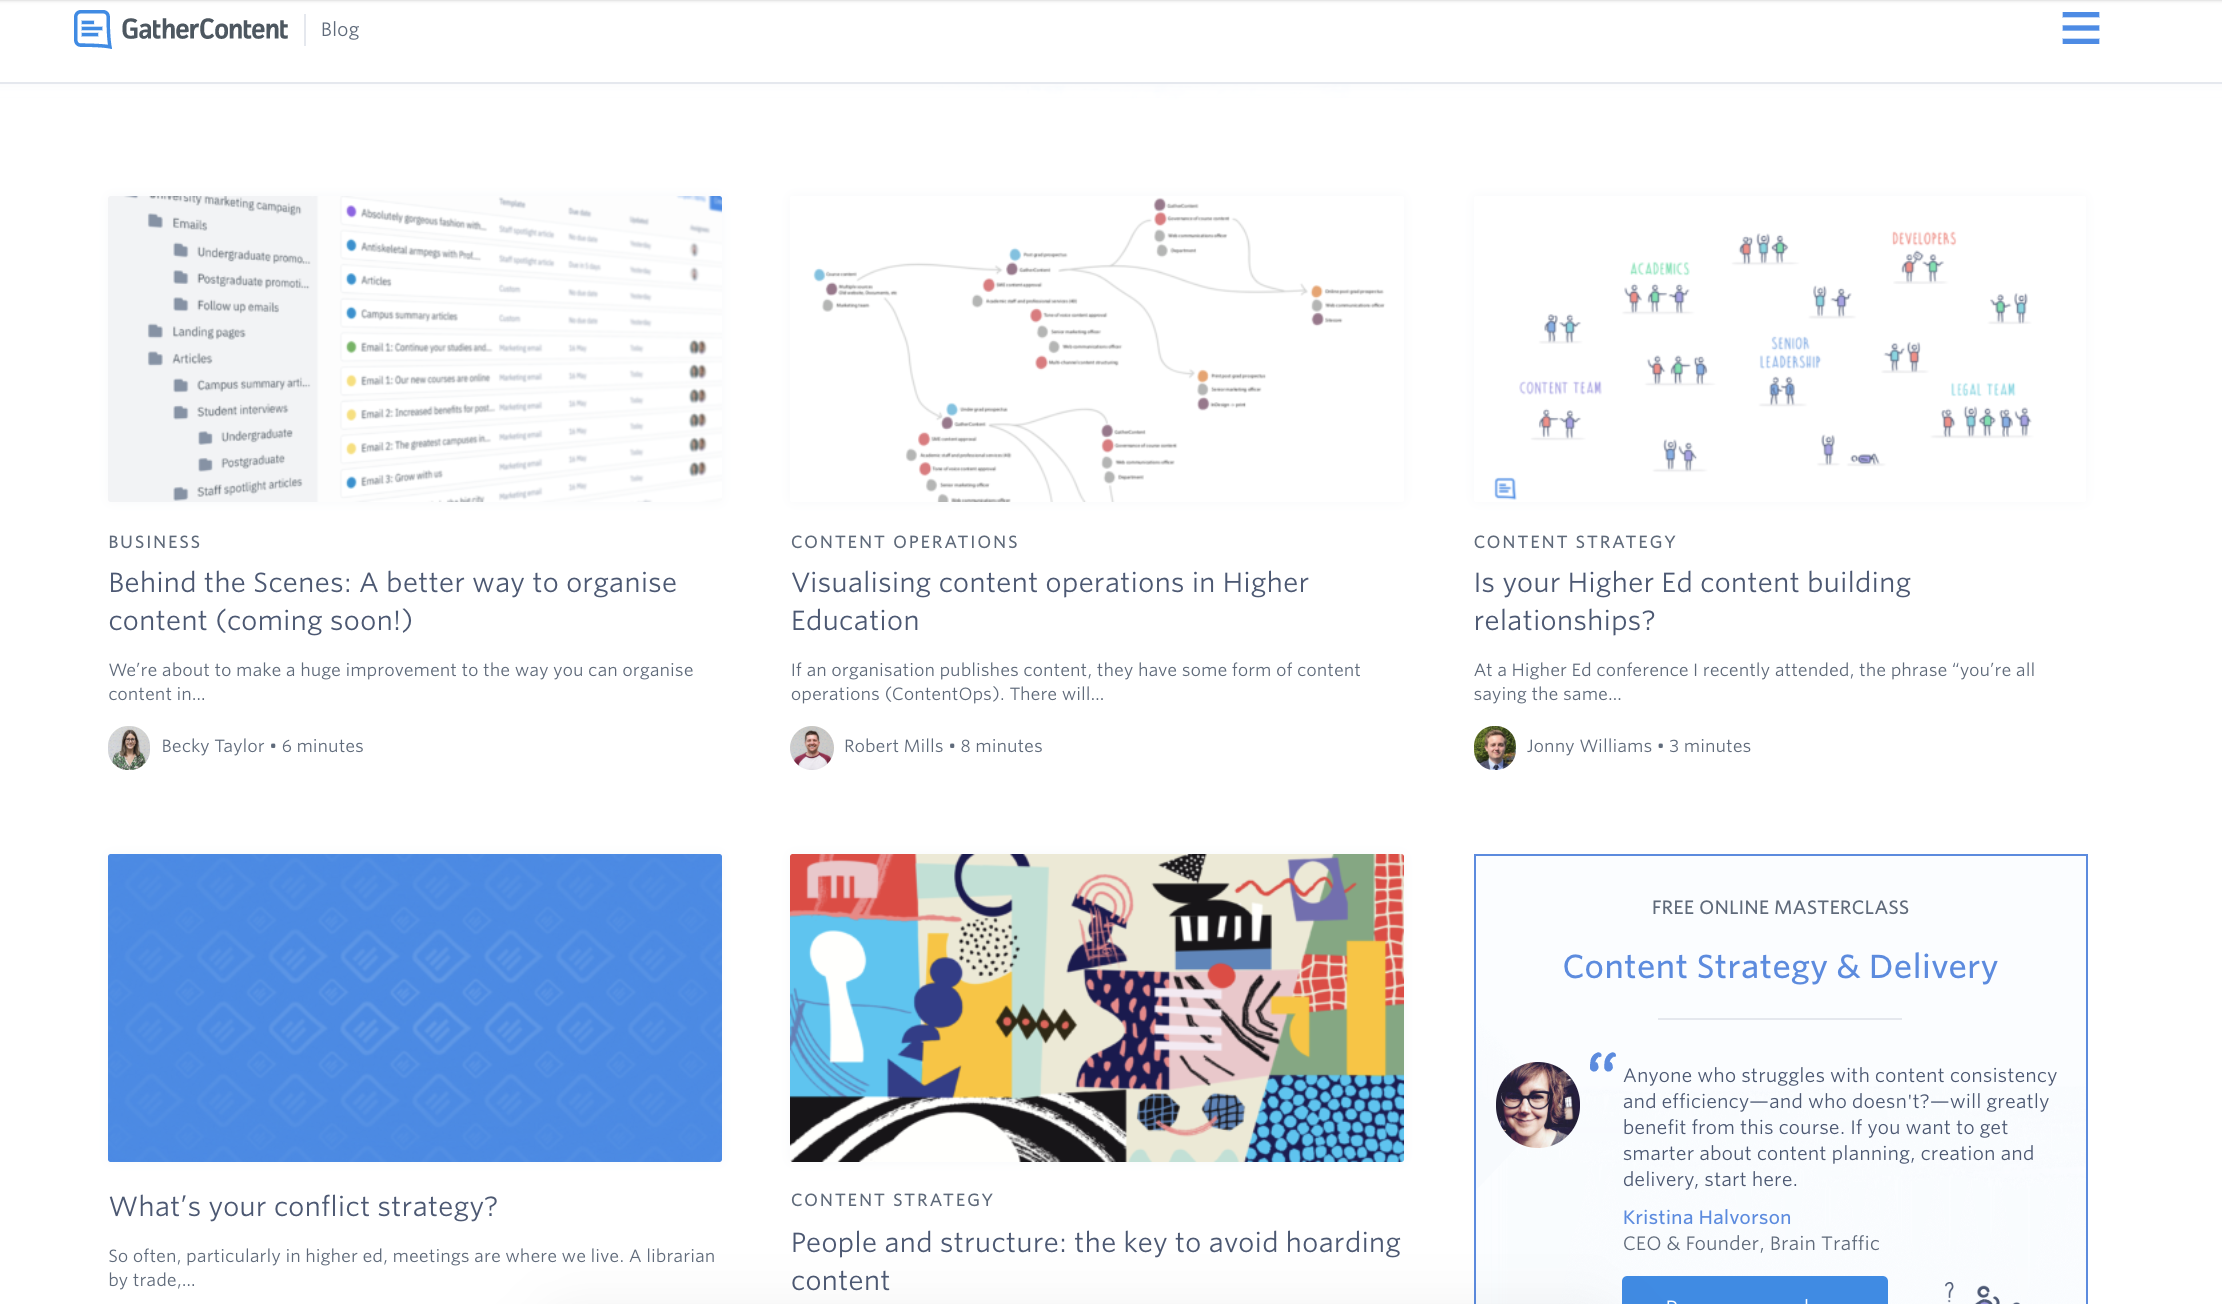 An image showing the GatherContent blog in April 2019 with different styles of thumbnail images for a selection of articles.